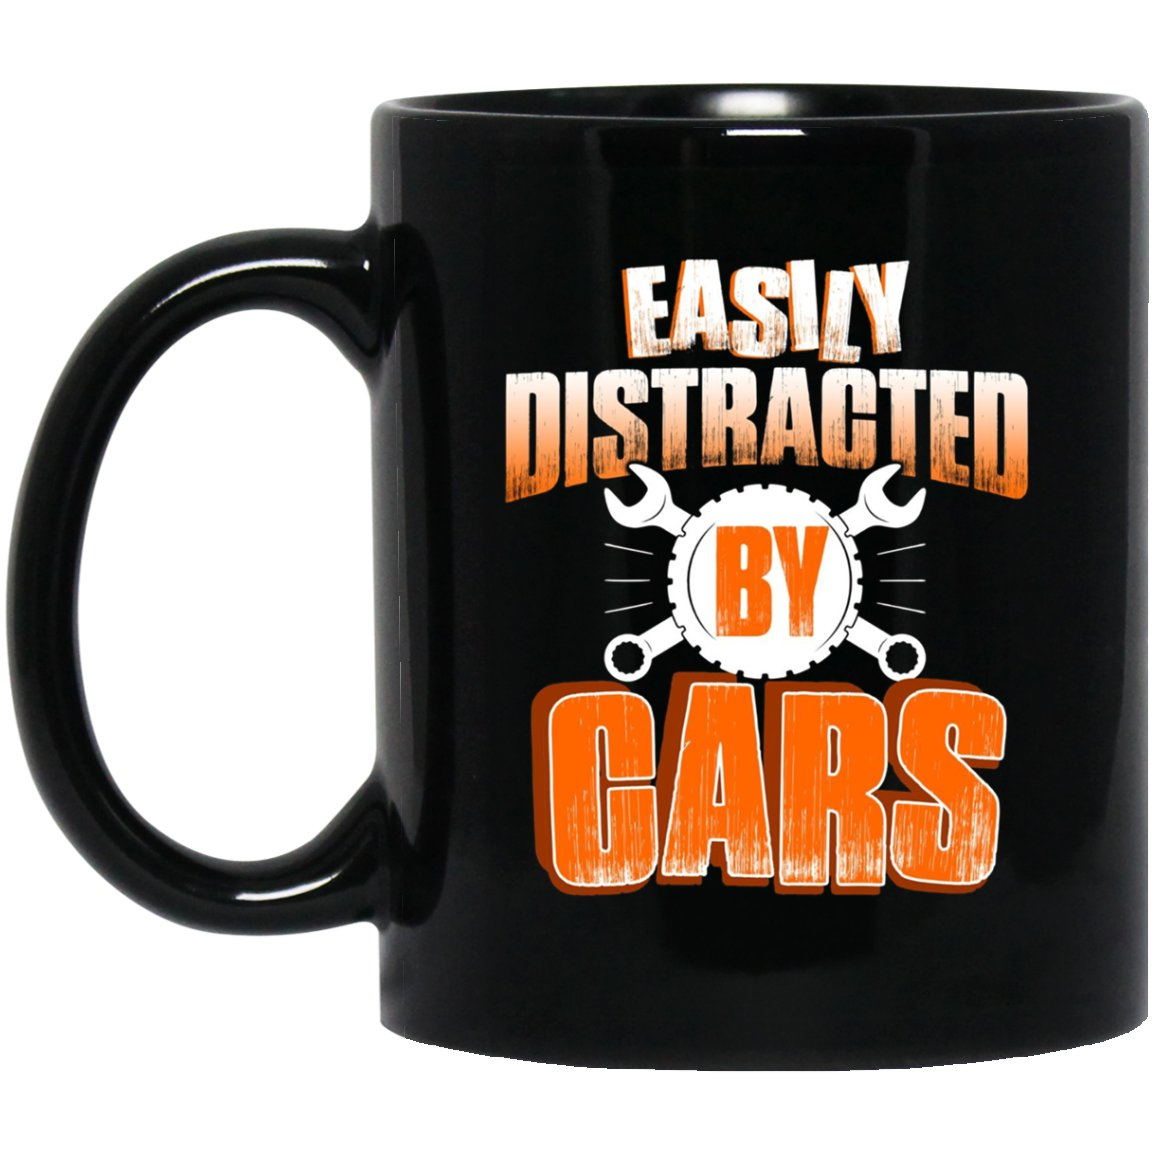 Funny Mechanic Easily Distracted By Cars Gifts Black  Mug Black Ceramic 11oz Coffee Tea Cup